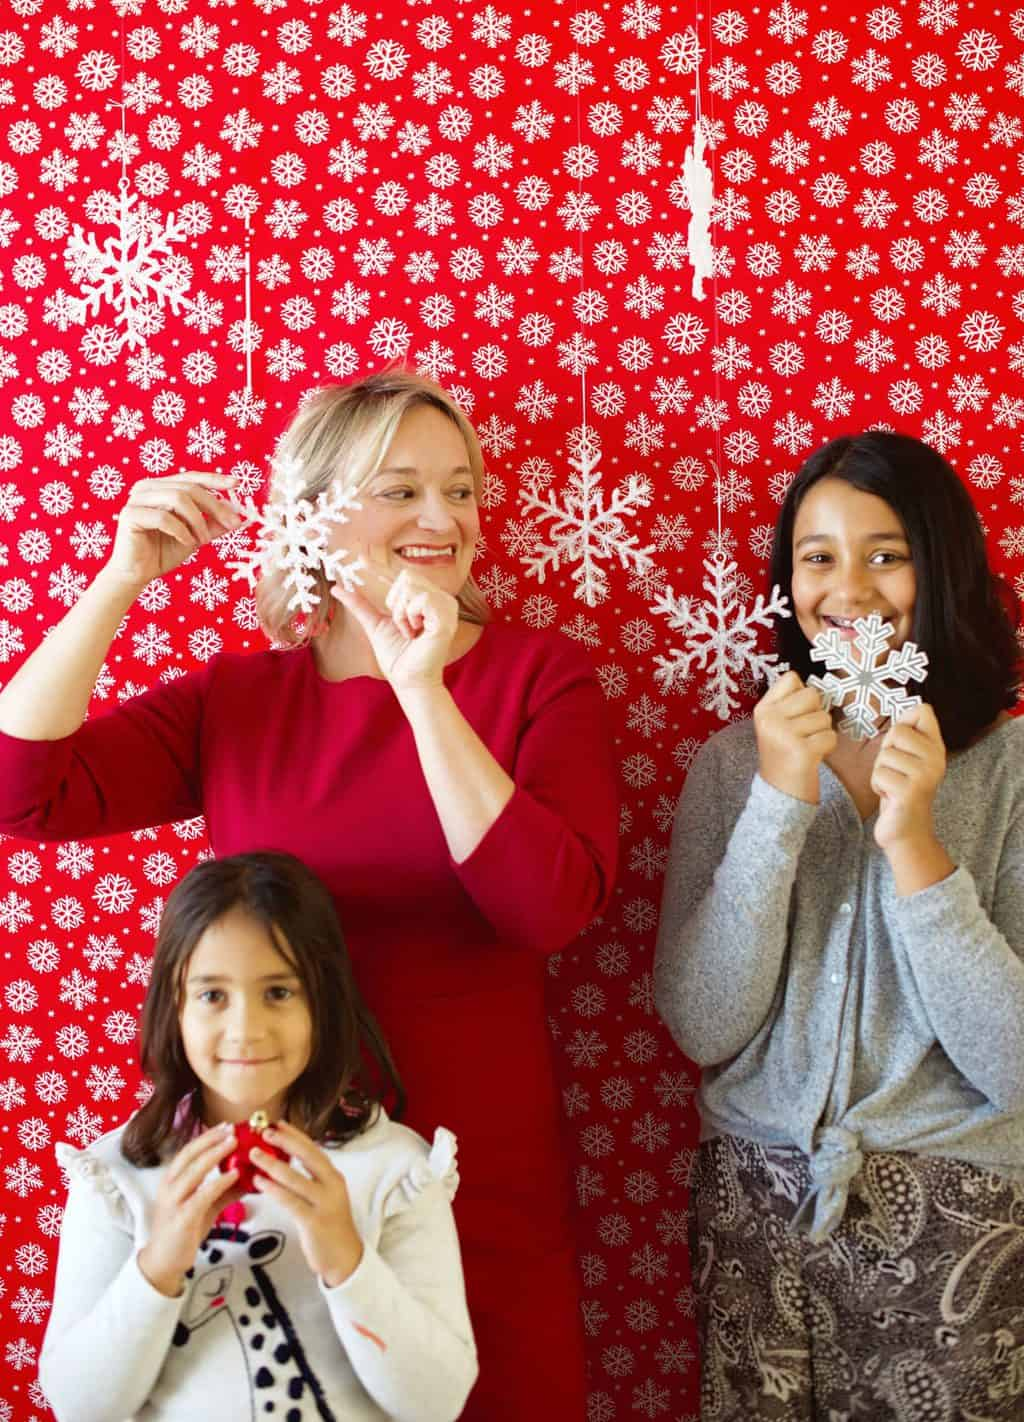 How to make a last minute photobooth for the holidays